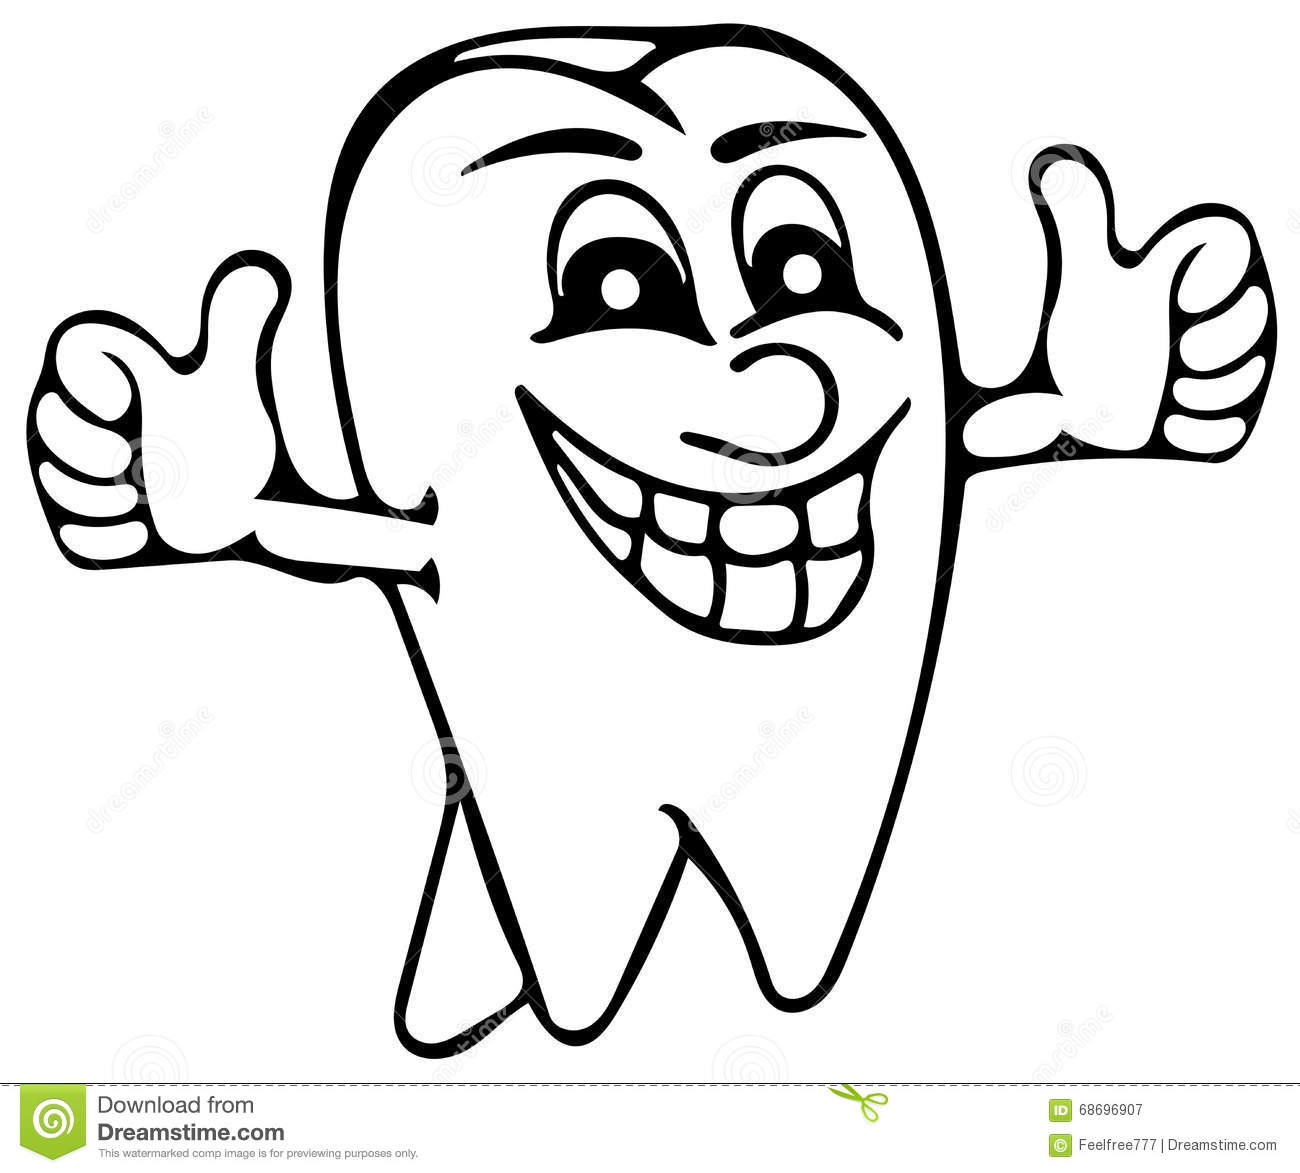 Tooth coloring pages stock illustration. Illustration of ...